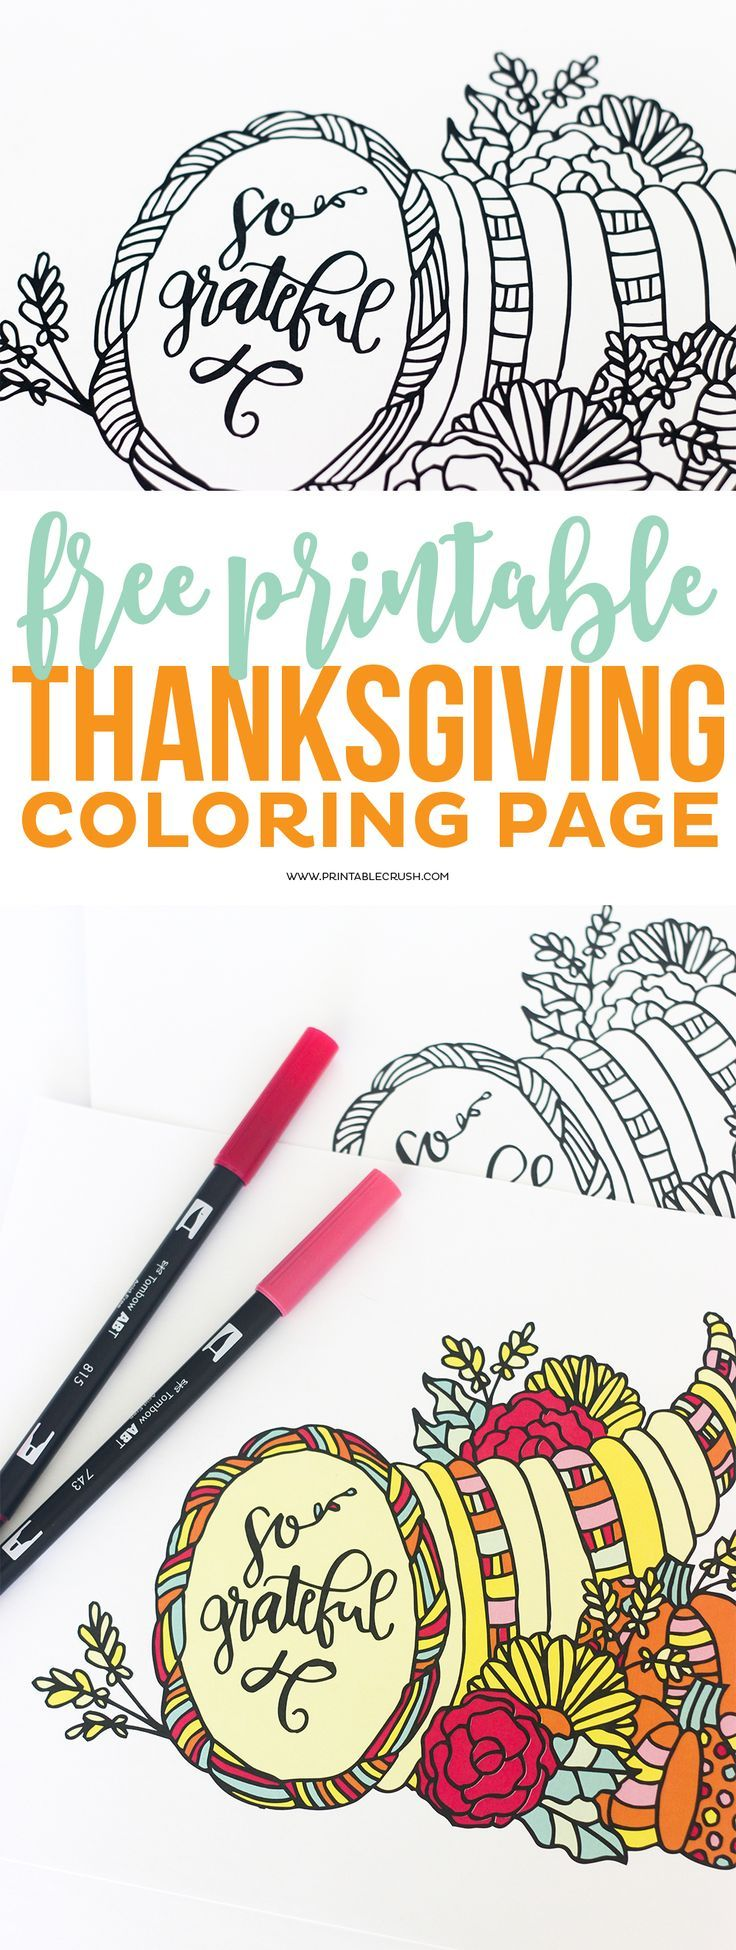 FREE Printable Thanksgiving Coloring Page | Thanksgiving and Free ...